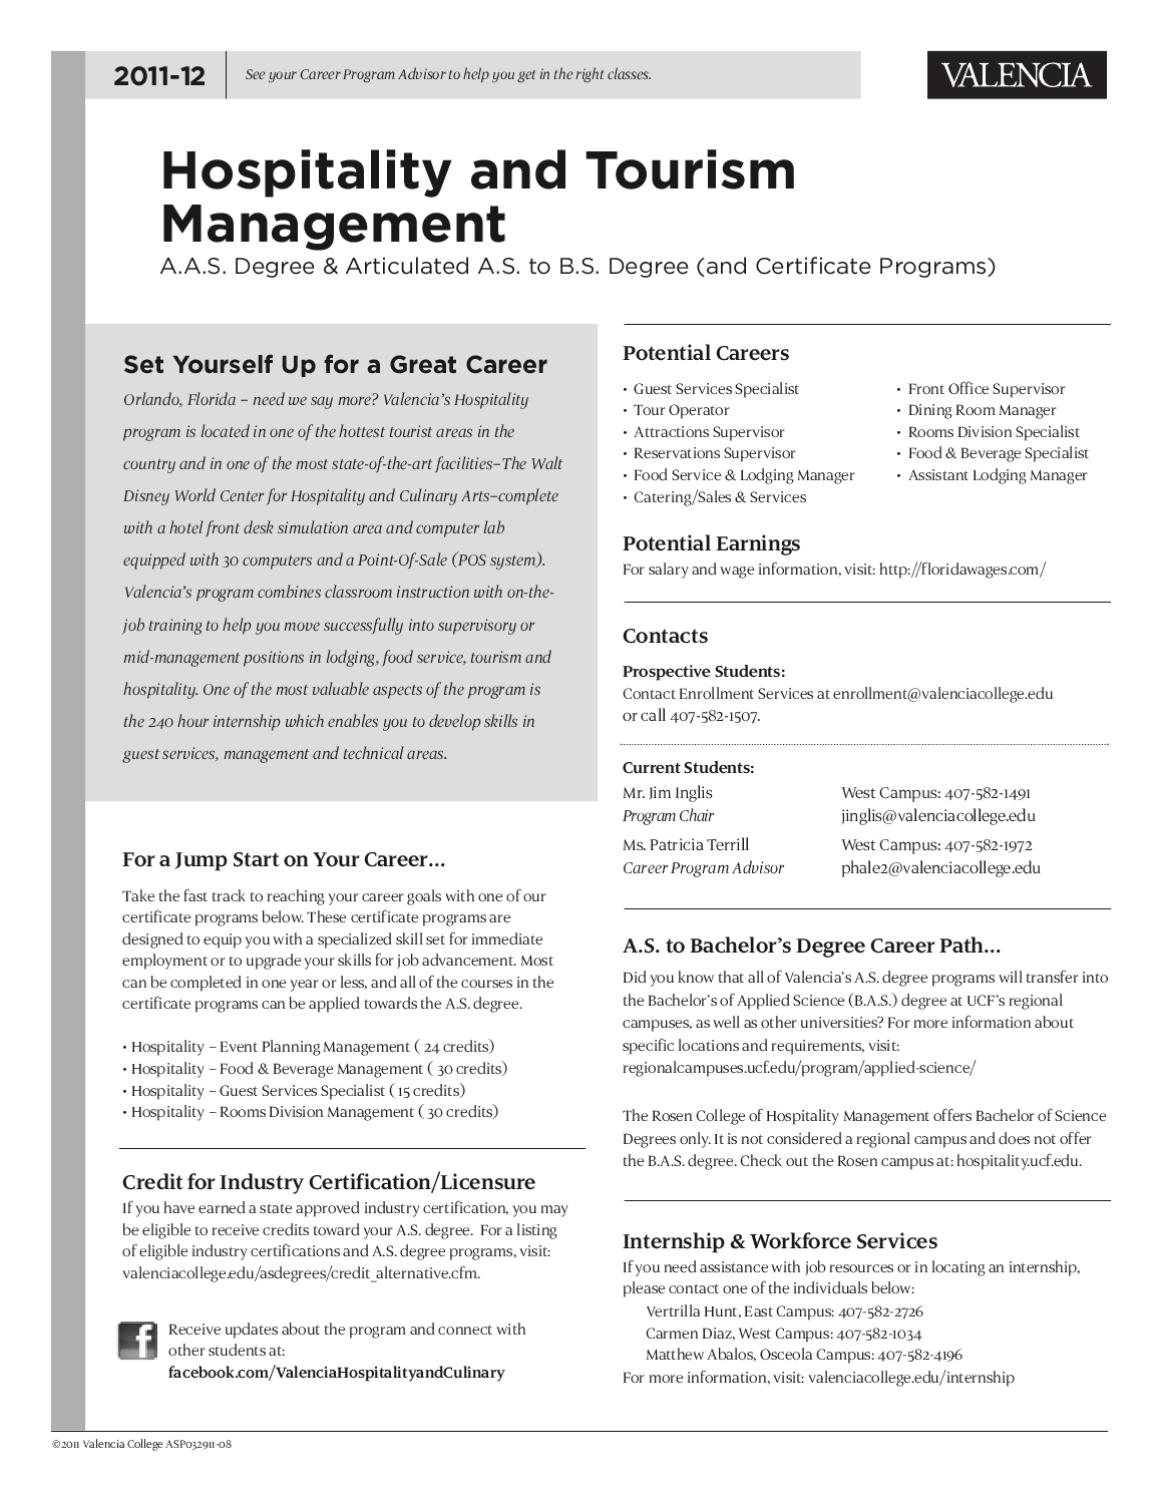 Hospitalitytourismmanagement By Valencia College Issuu